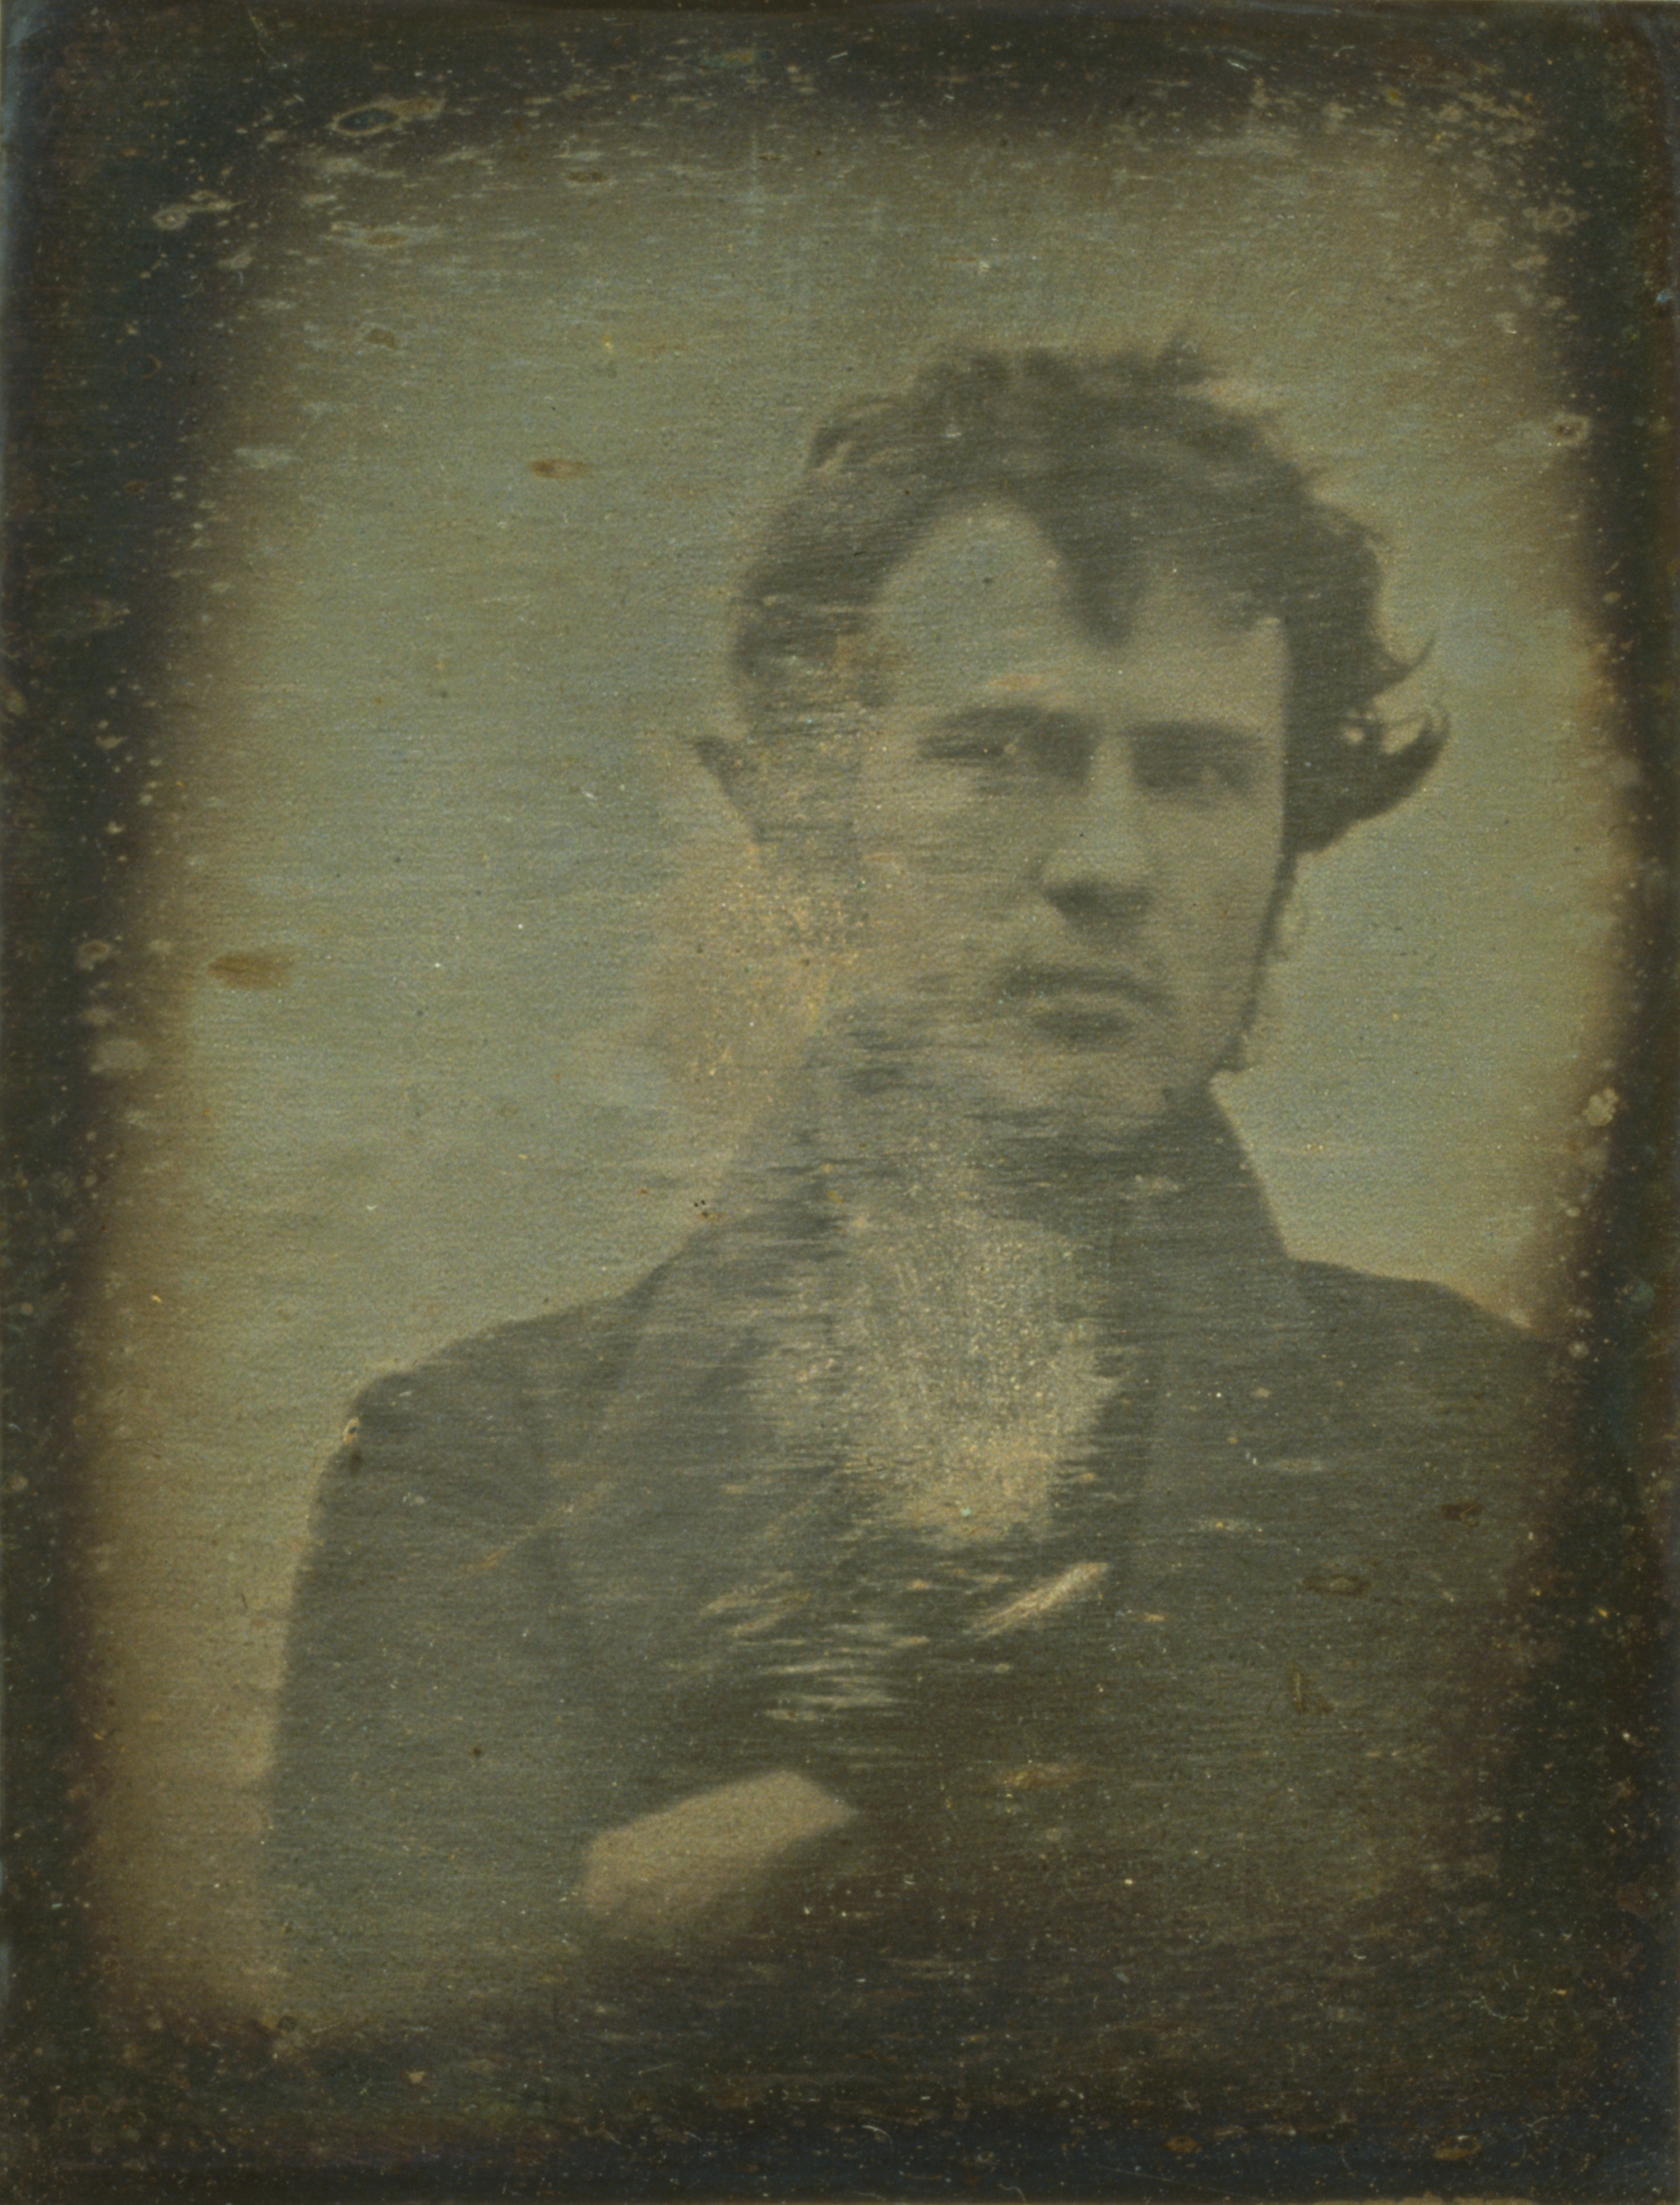 Robert Cornelius Le premier (auto)portrait photographique photographie histoire featured art